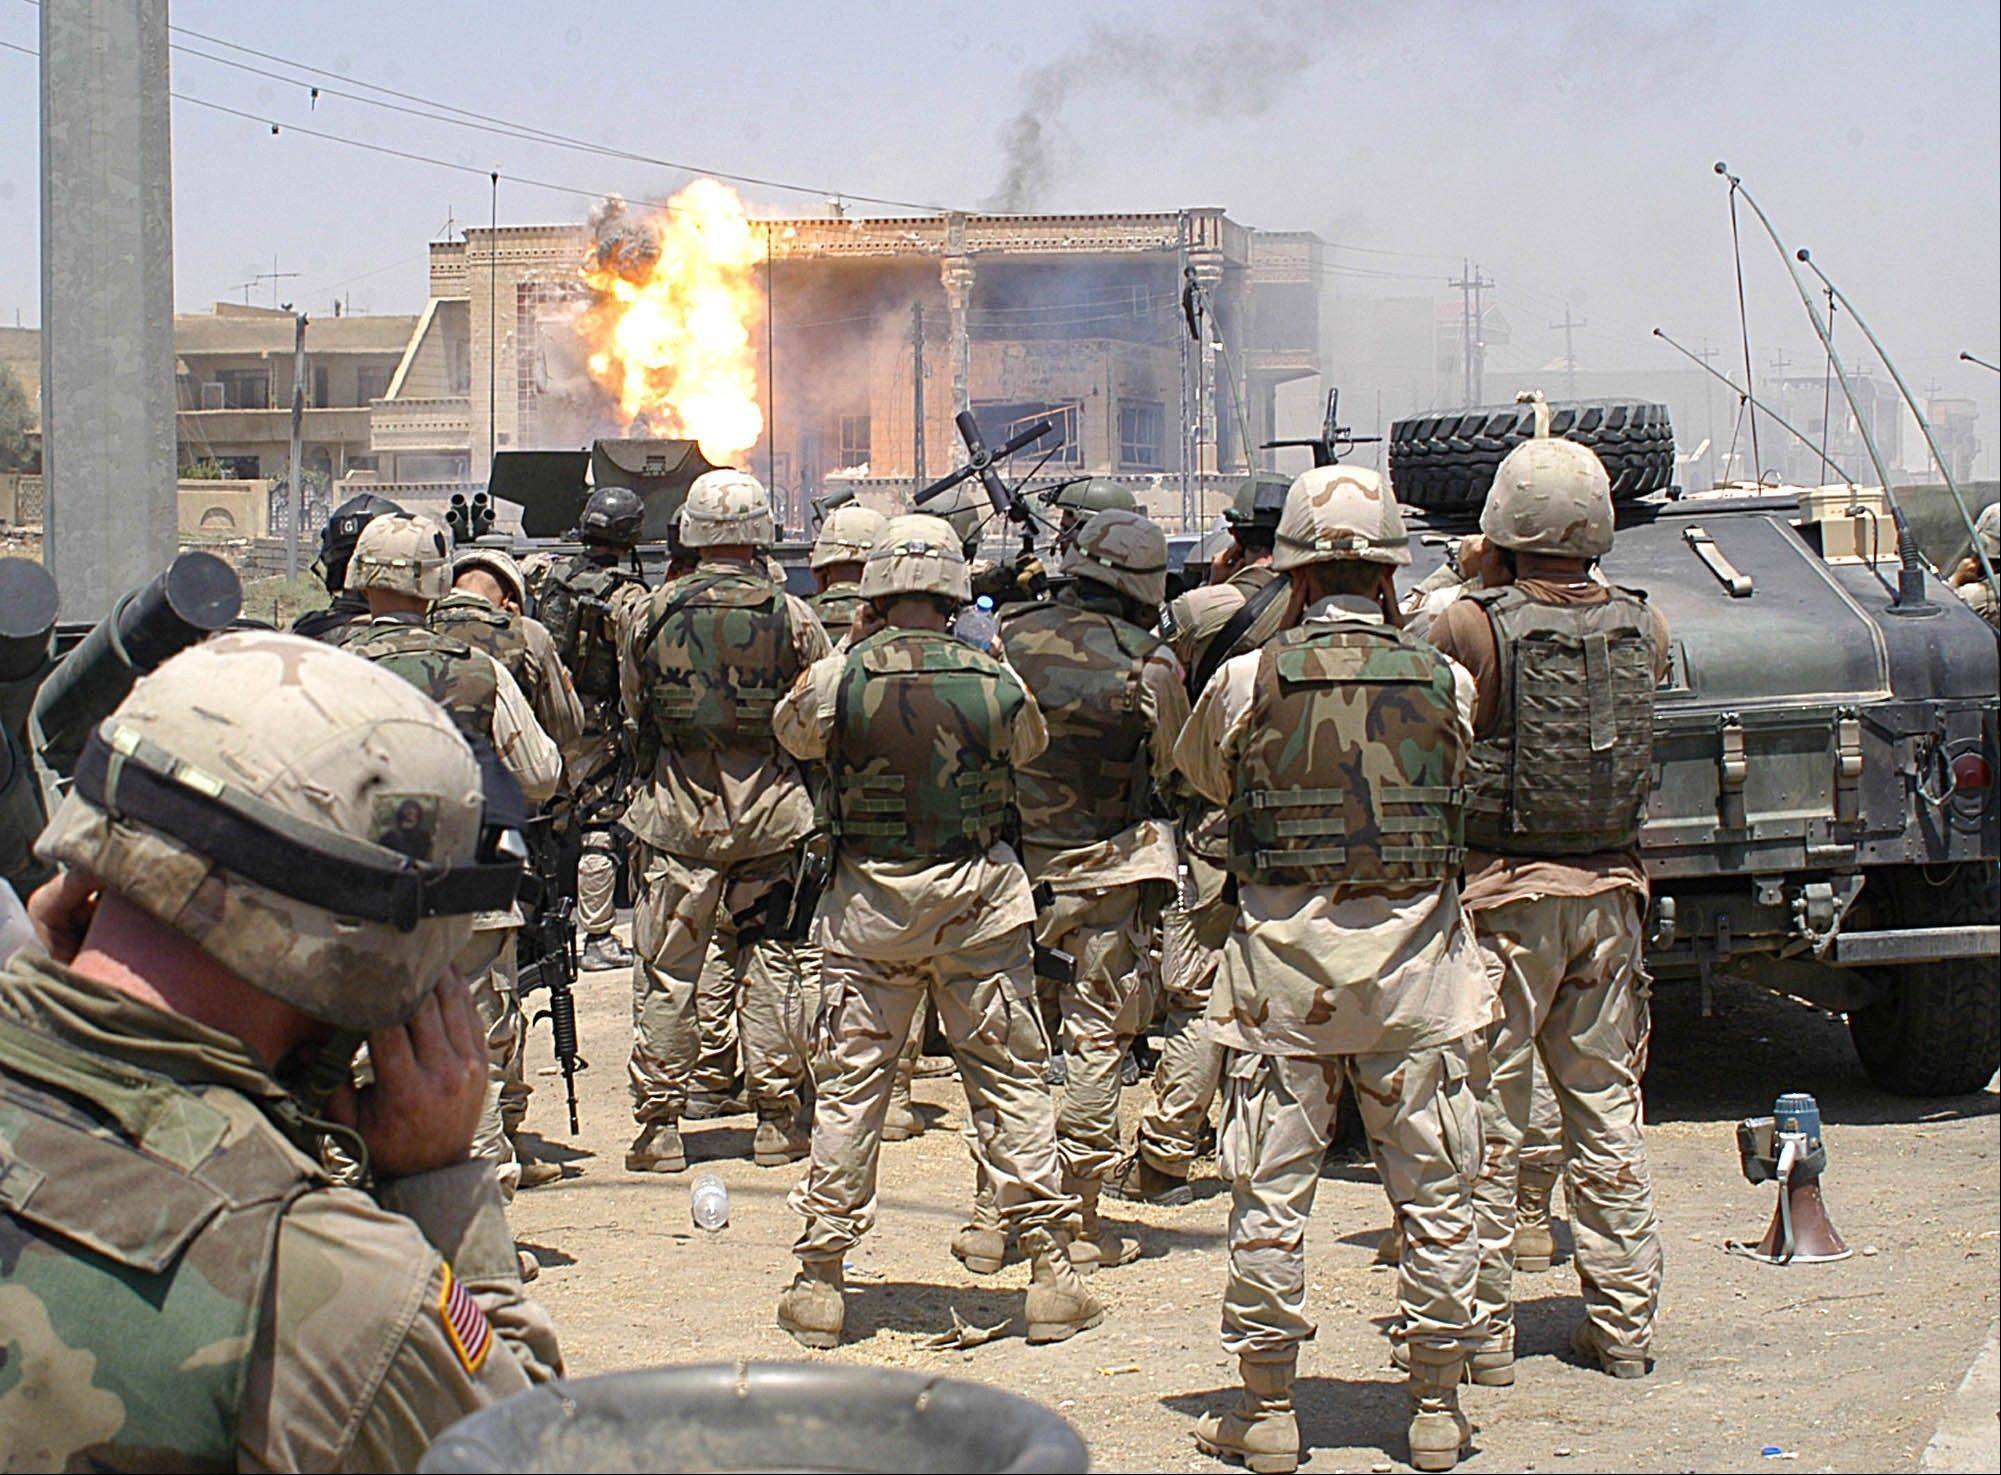 FILE - Flames erupt from a building hit with a TOW missile launched by soldiers of the Army�s 101st Airborne Division (Air Assault) in Mosul, Iraq on July 21, 2003. Saddam Hussein�s sons Qusay and Uday were killed in a gun battle as they resisted efforts by coalition forces to apprehend and detain them.